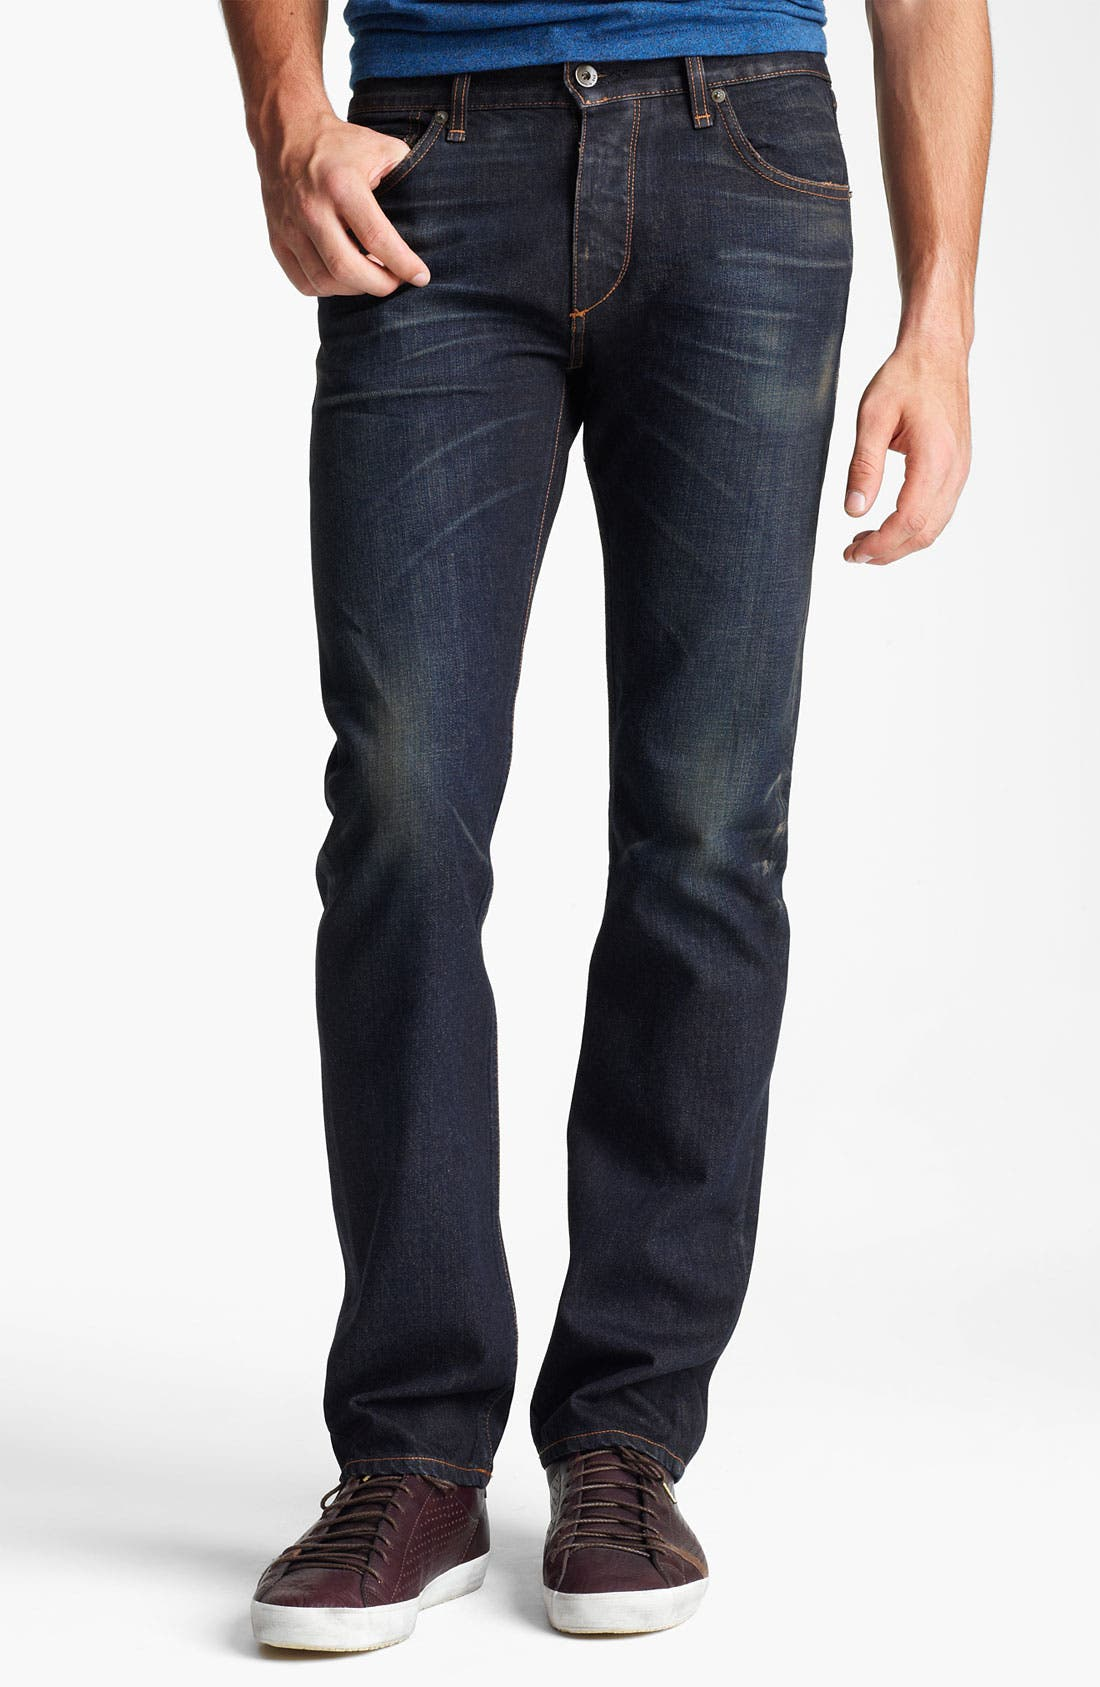 Alternate Image 1 Selected - rag & bone 'RB19X' Slim Straight Leg Jeans (Charing Blue)